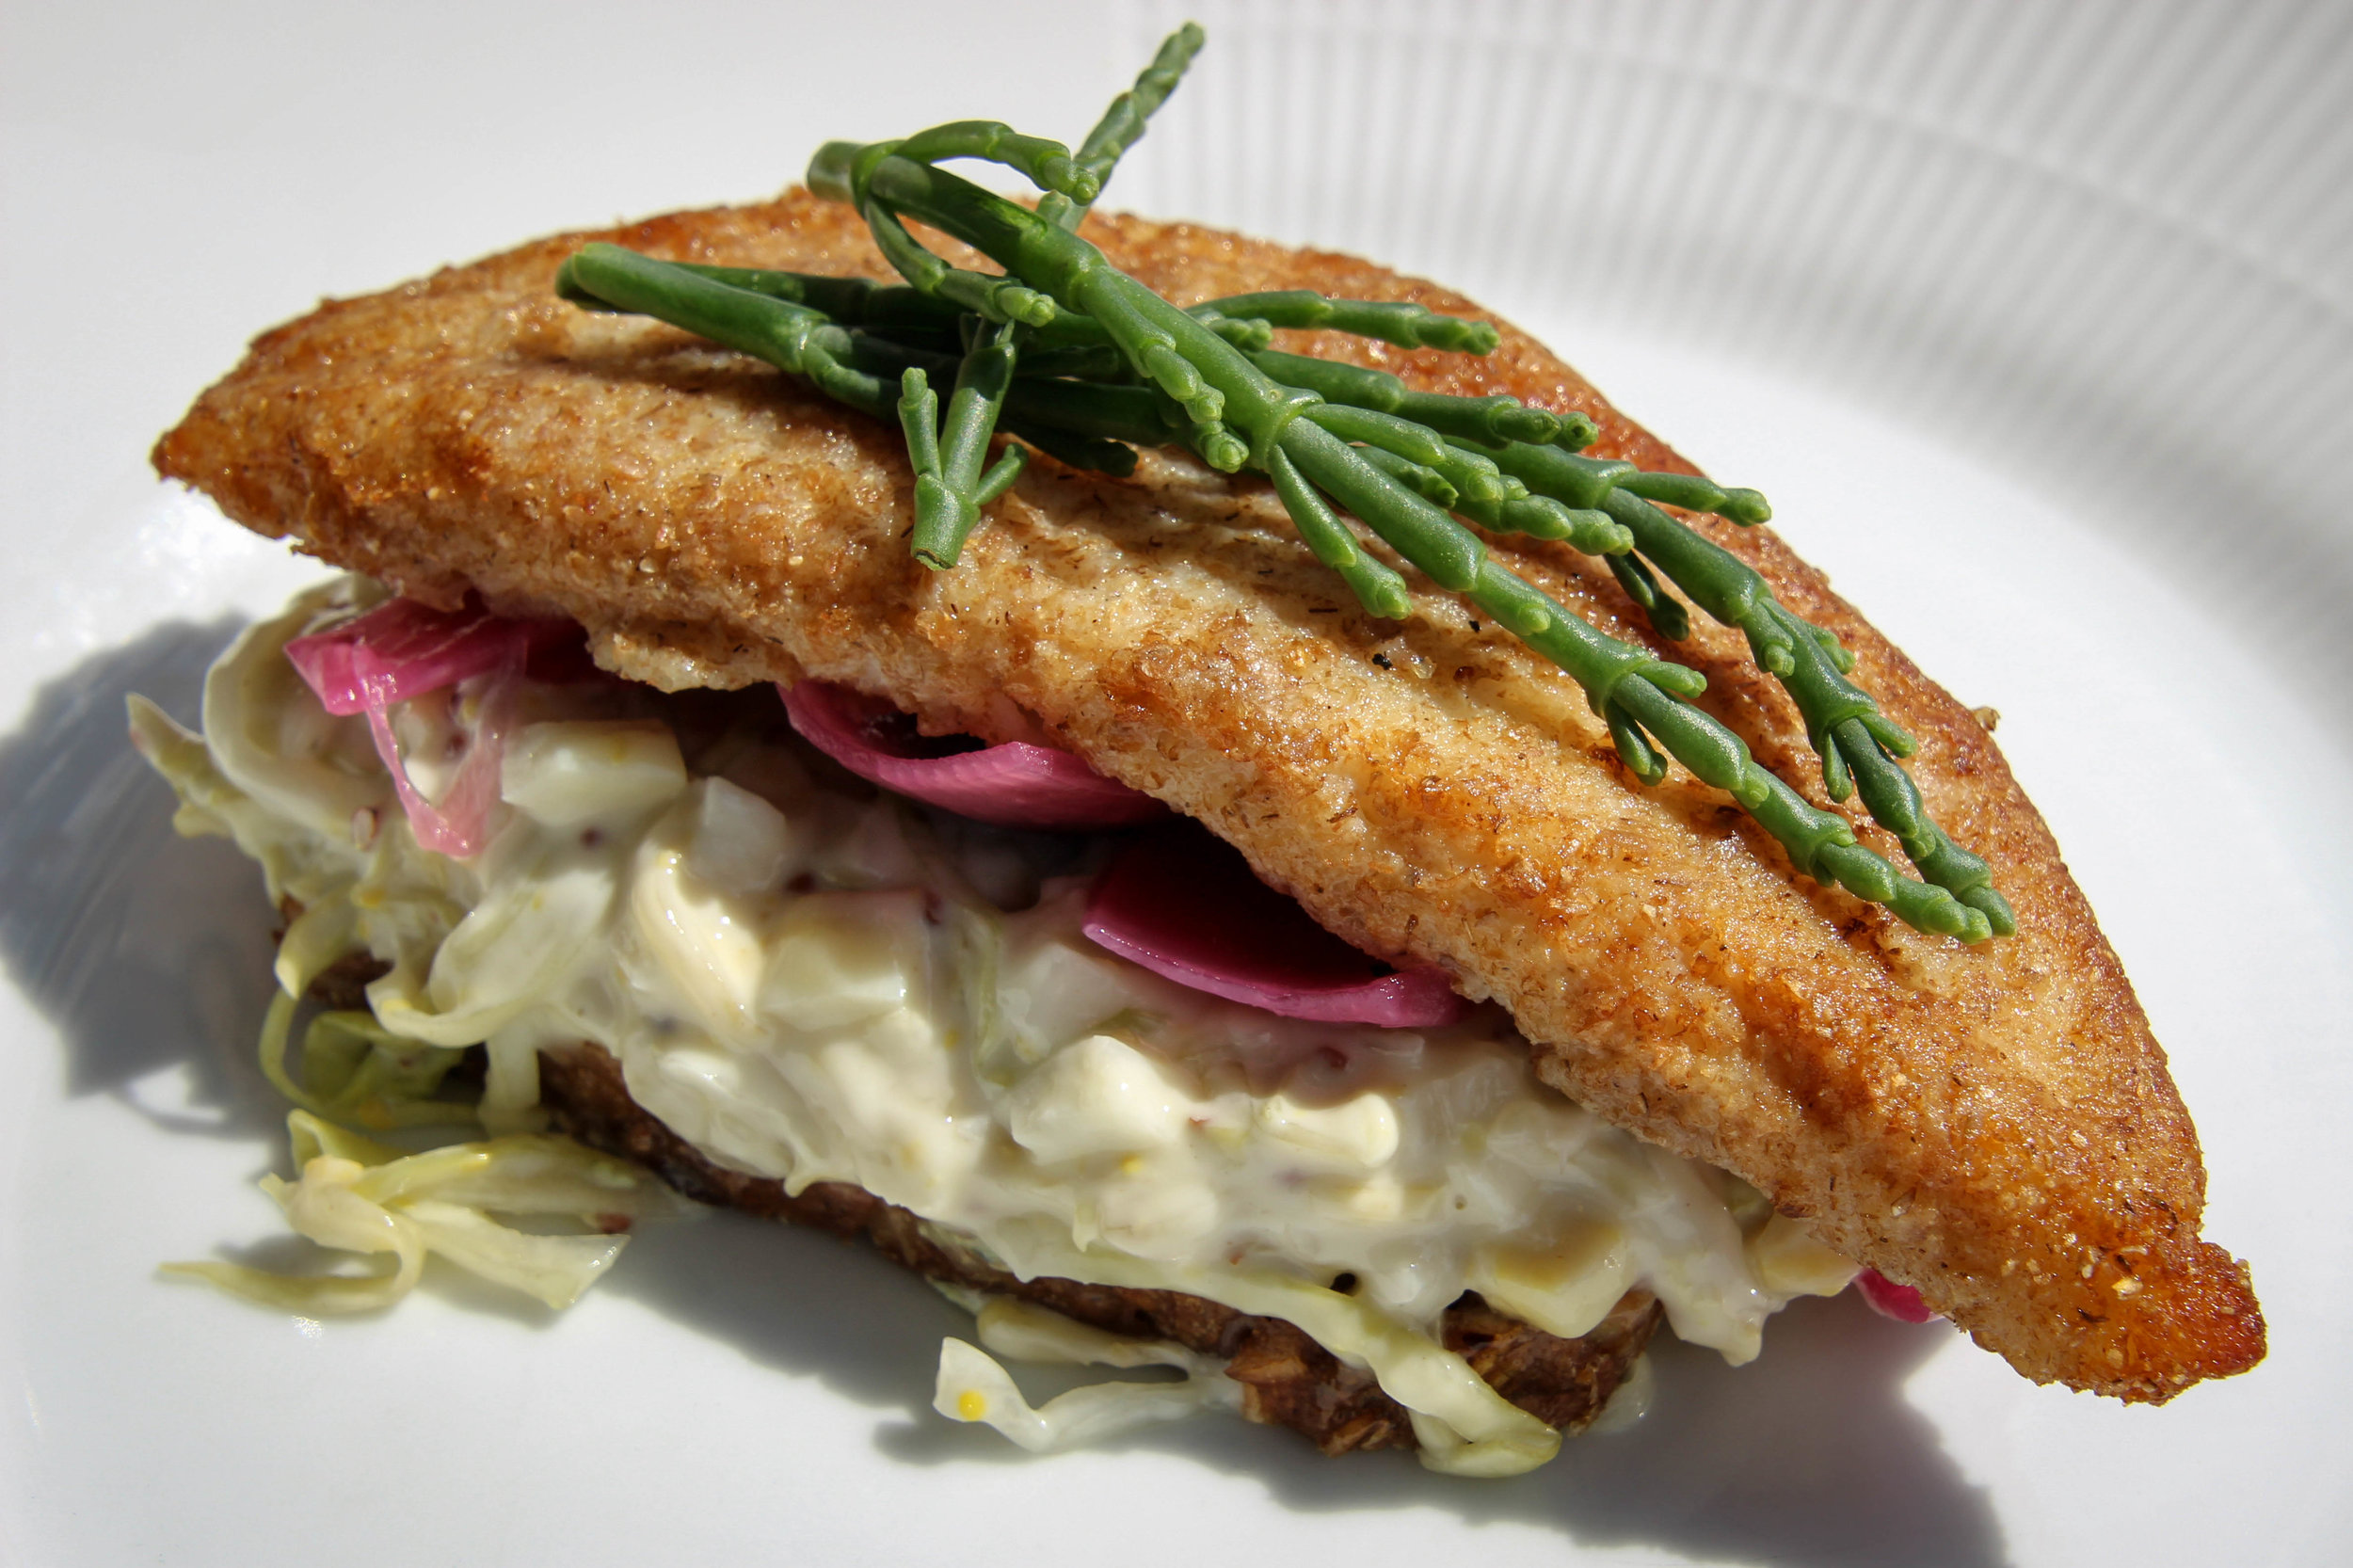 Fish fillet with pickled cabbage, glasswort and creamy kale